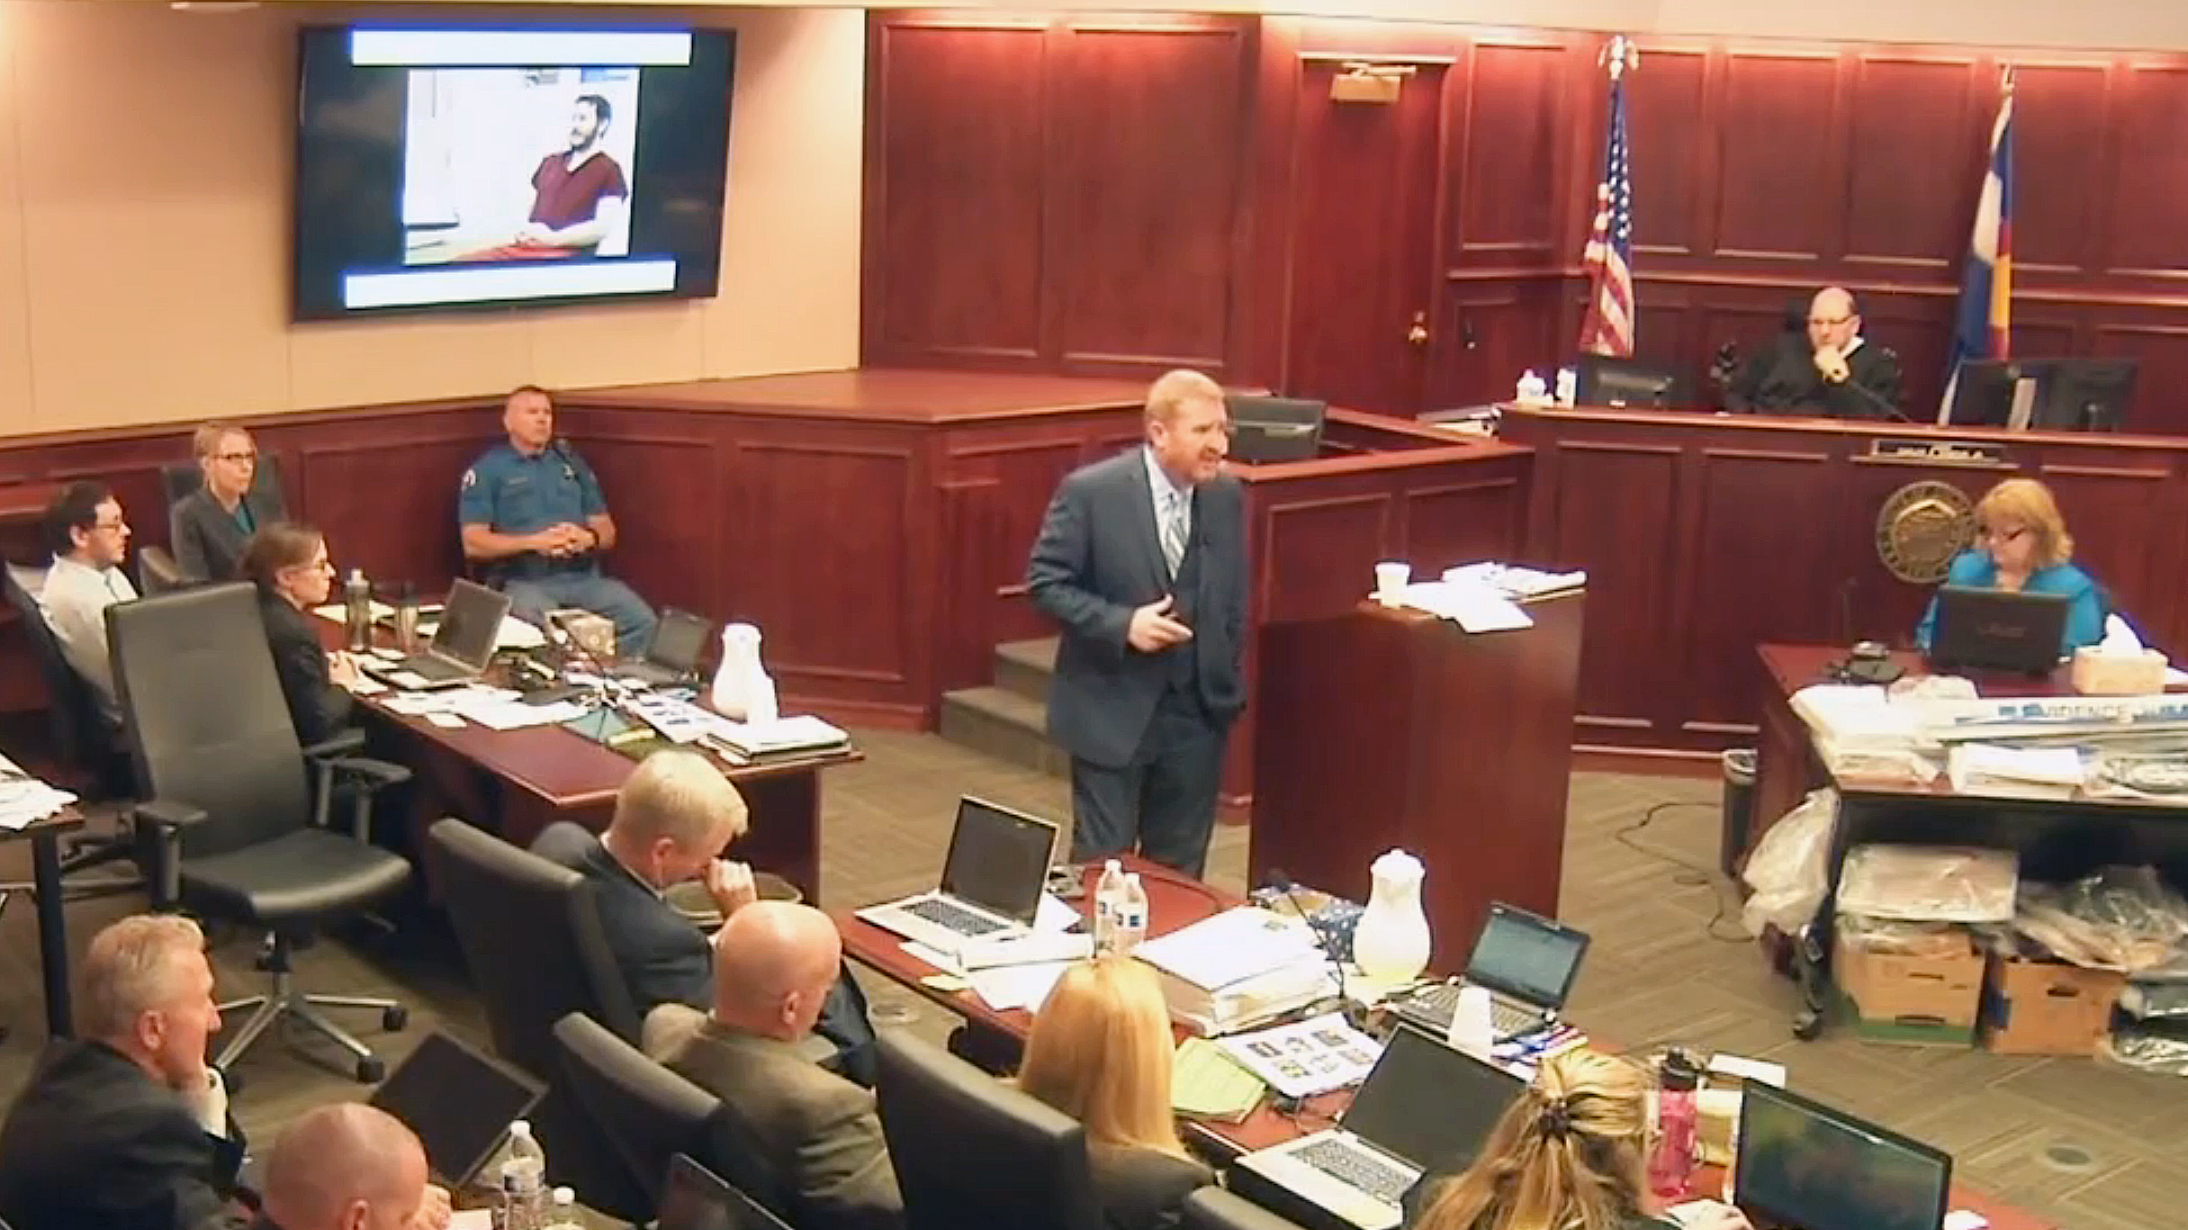 Jury Rejects Insanity Defense For Theater Shooter, Who May ...